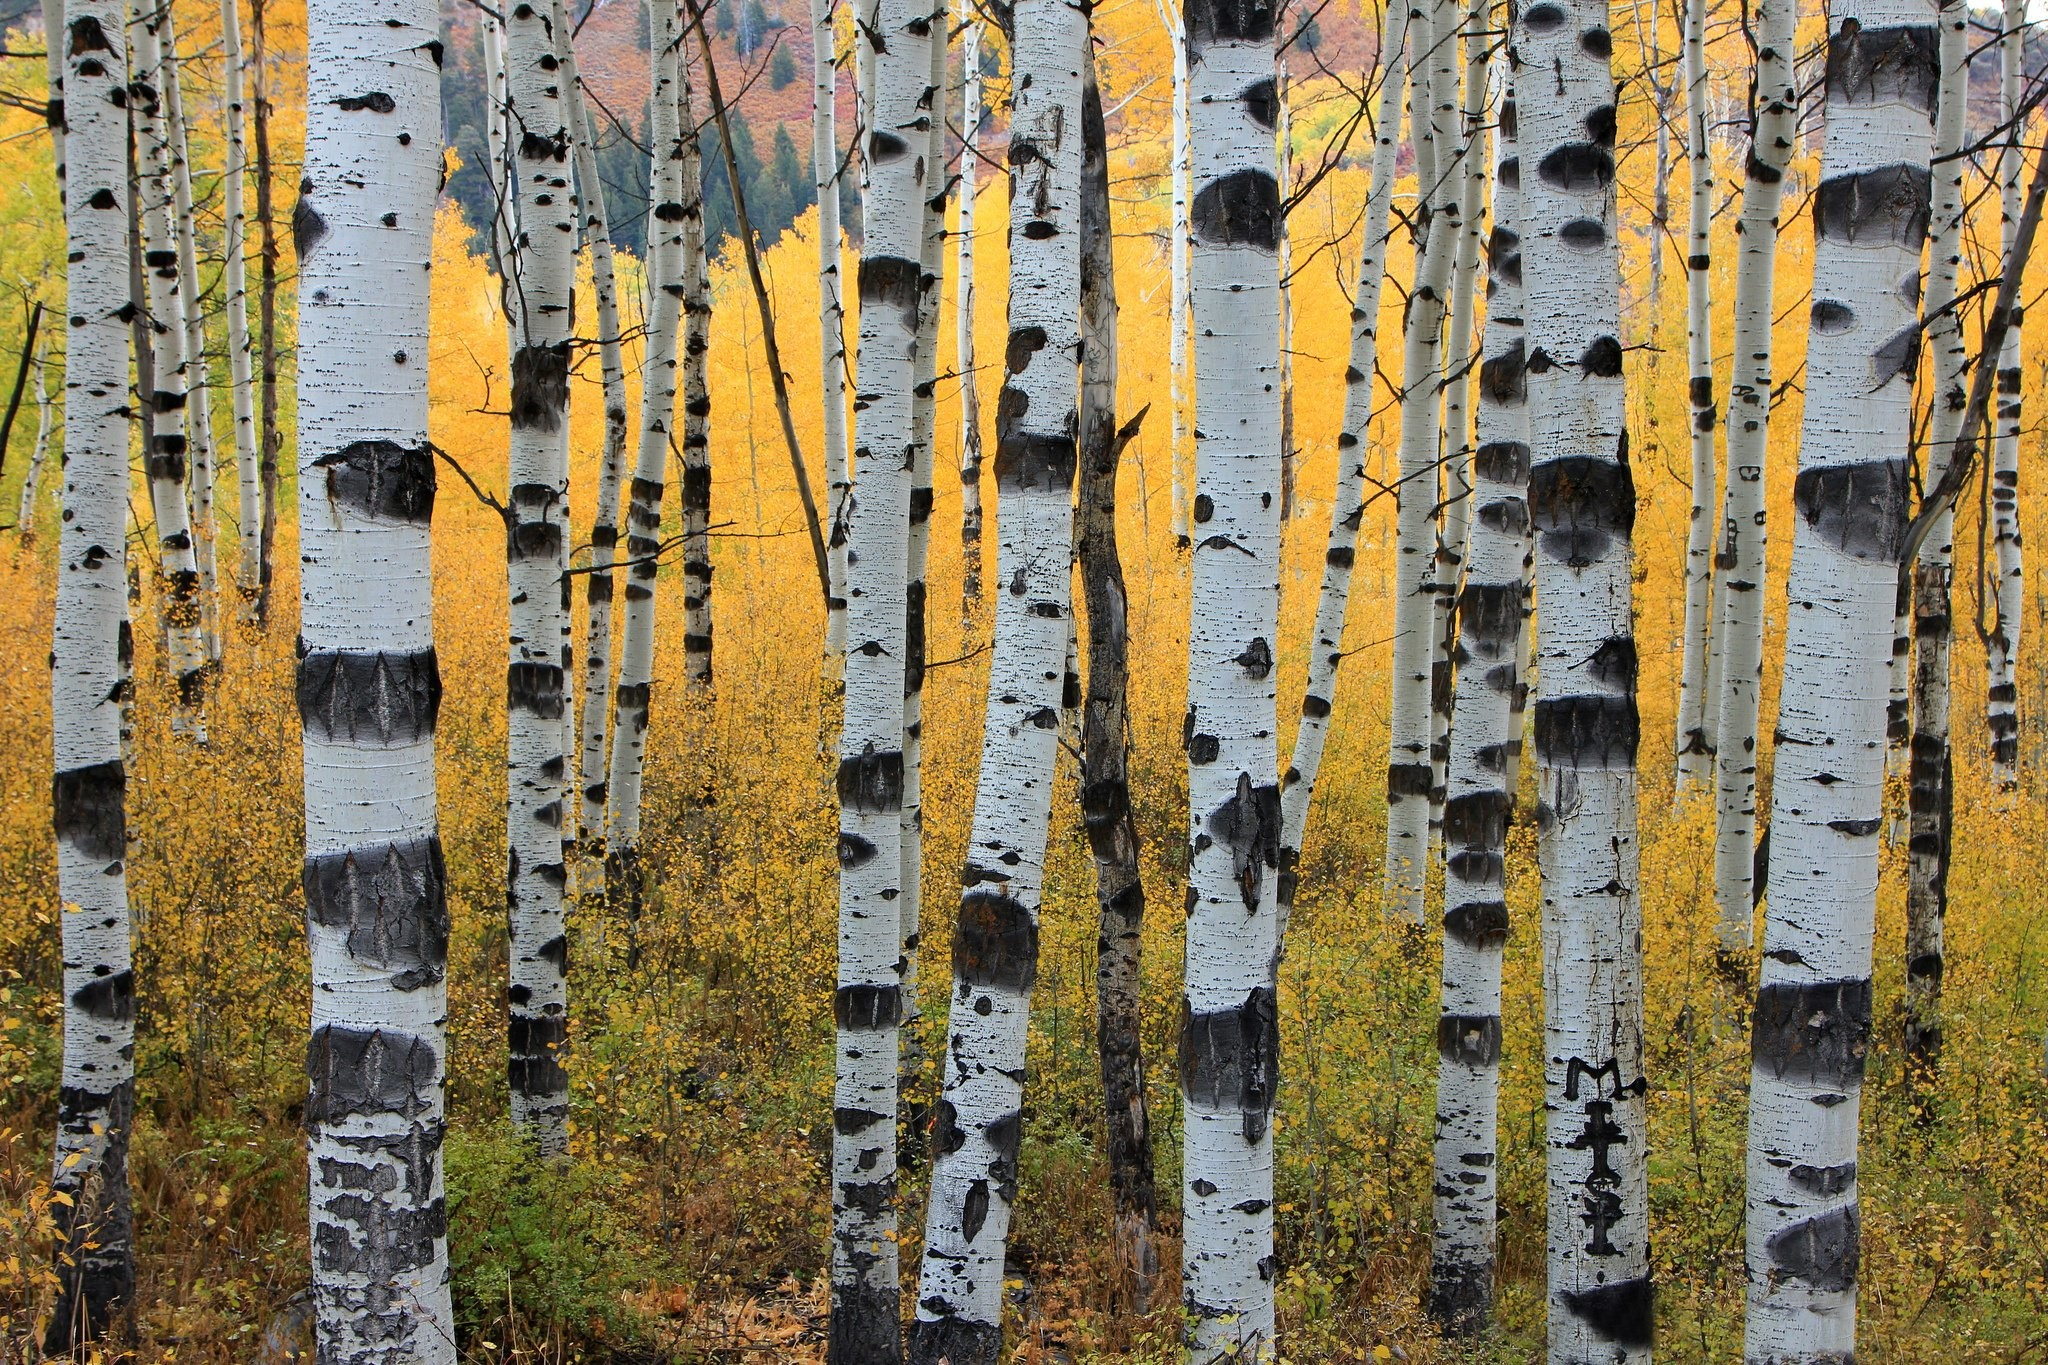 2048x1365 wallpaper.wiki-Autumn-aspen-trunks-trees-forest-PIC-